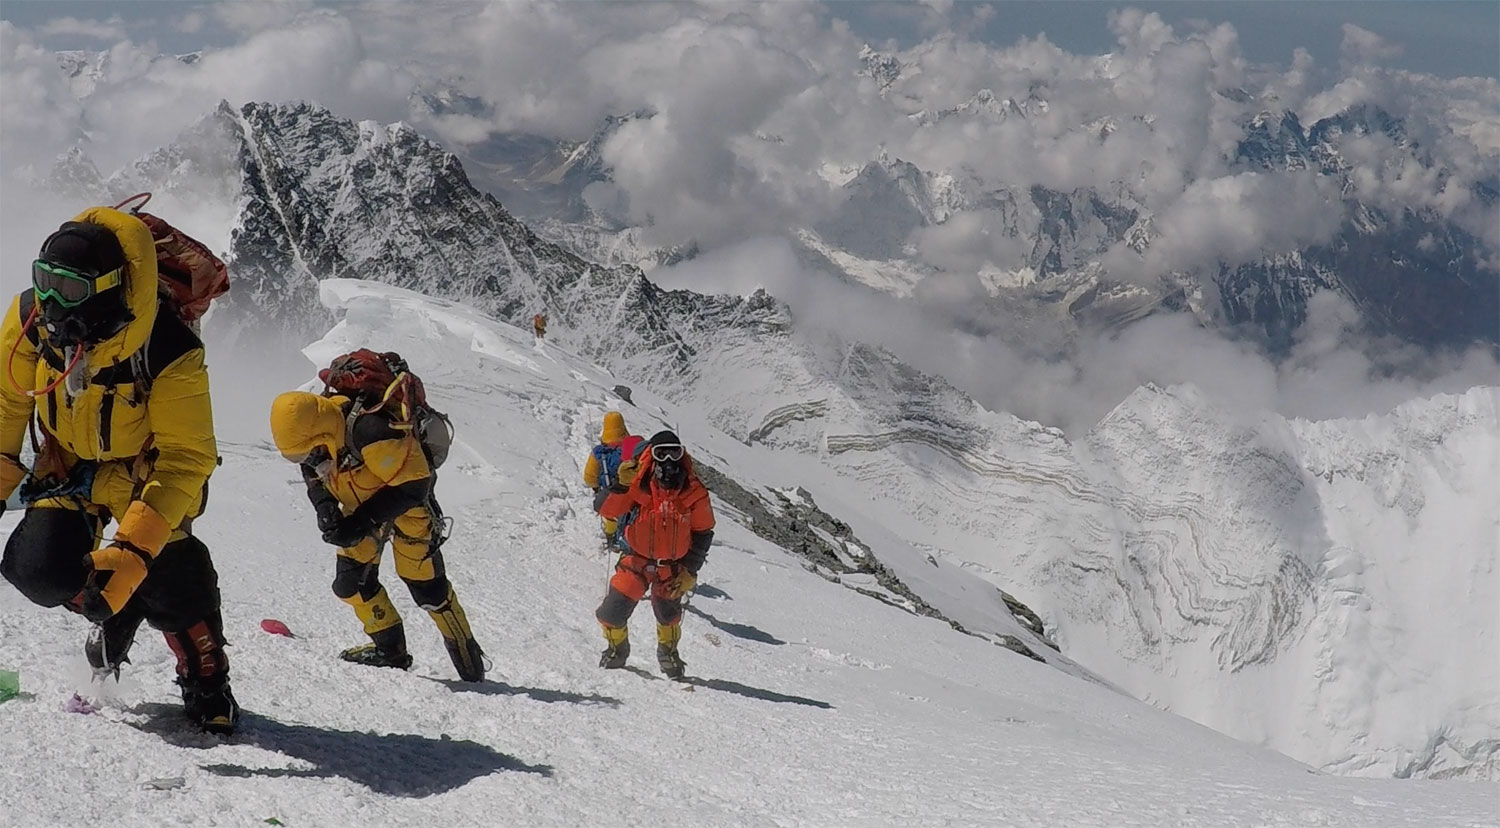 CHris Bombardier climbs Mt. Everest as the first hemophiliac to summit